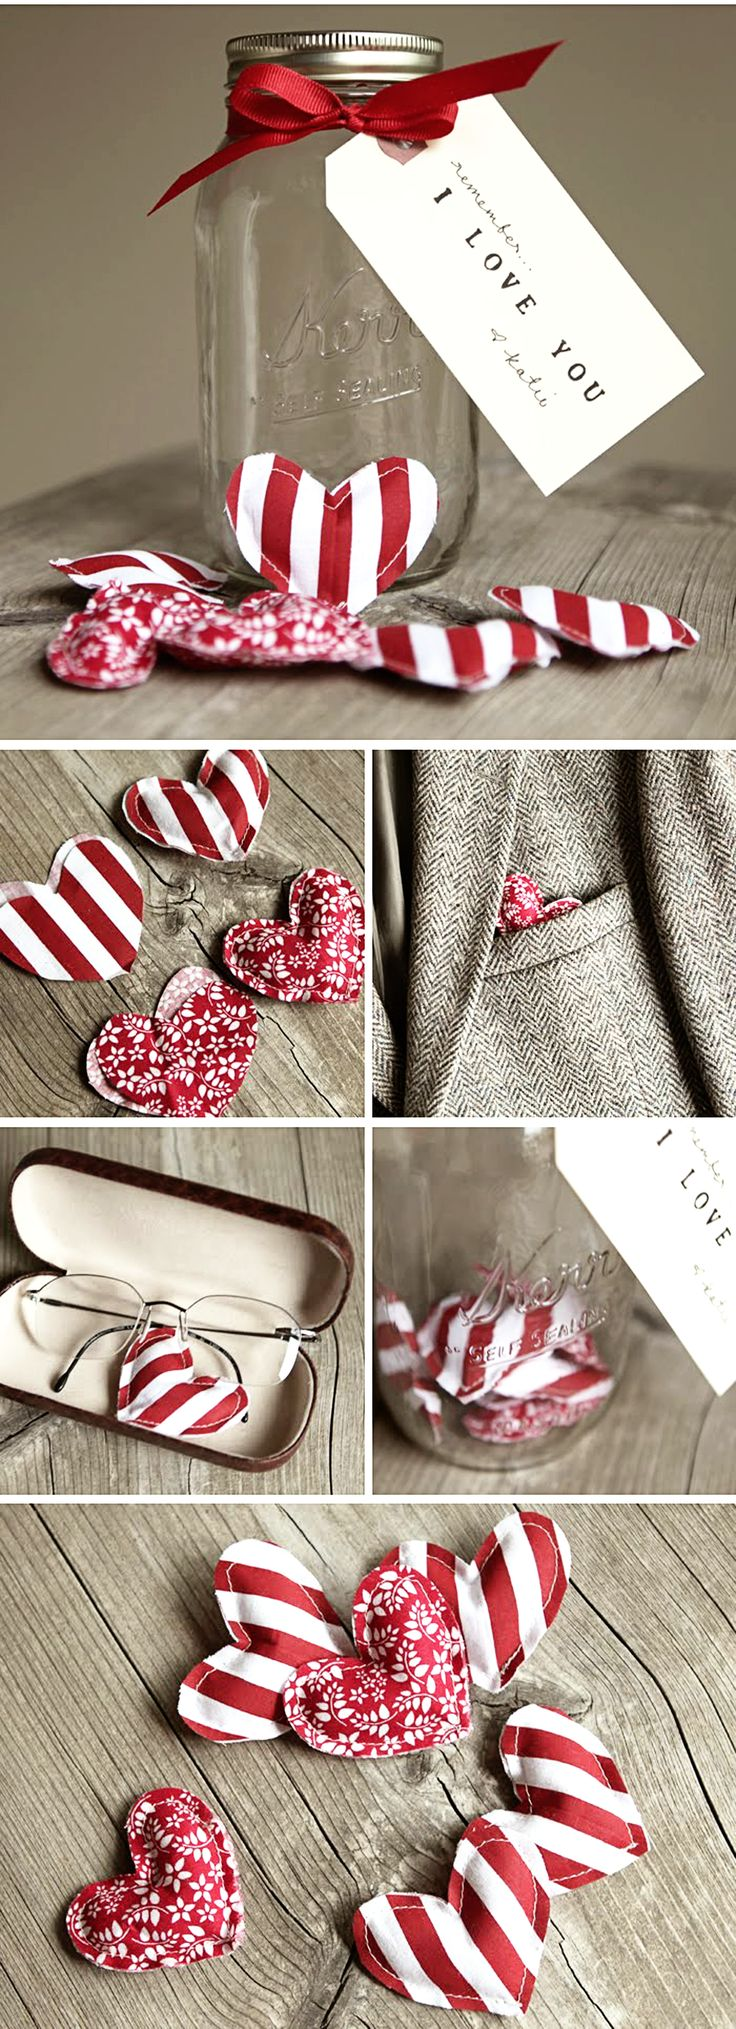 DIY Valentines Day I Love You Jar Gift Idea (fabric hearts) For